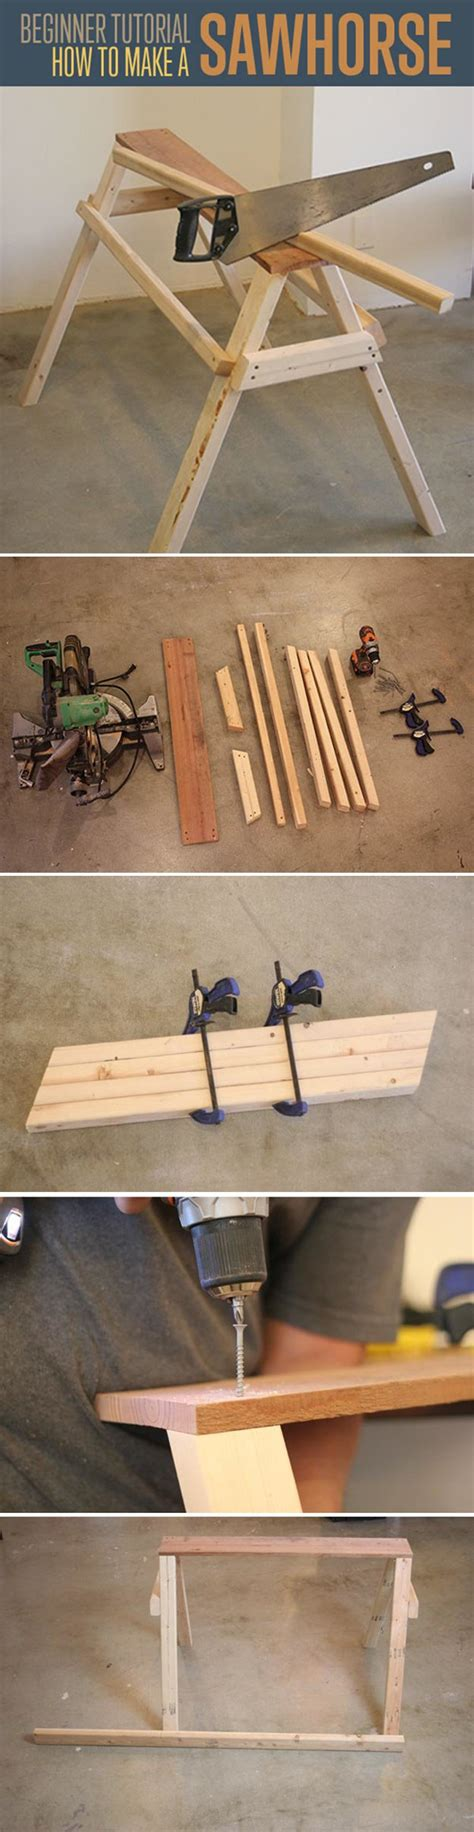 diy wood projects easy woodworking projects diyready com easy diy crafts